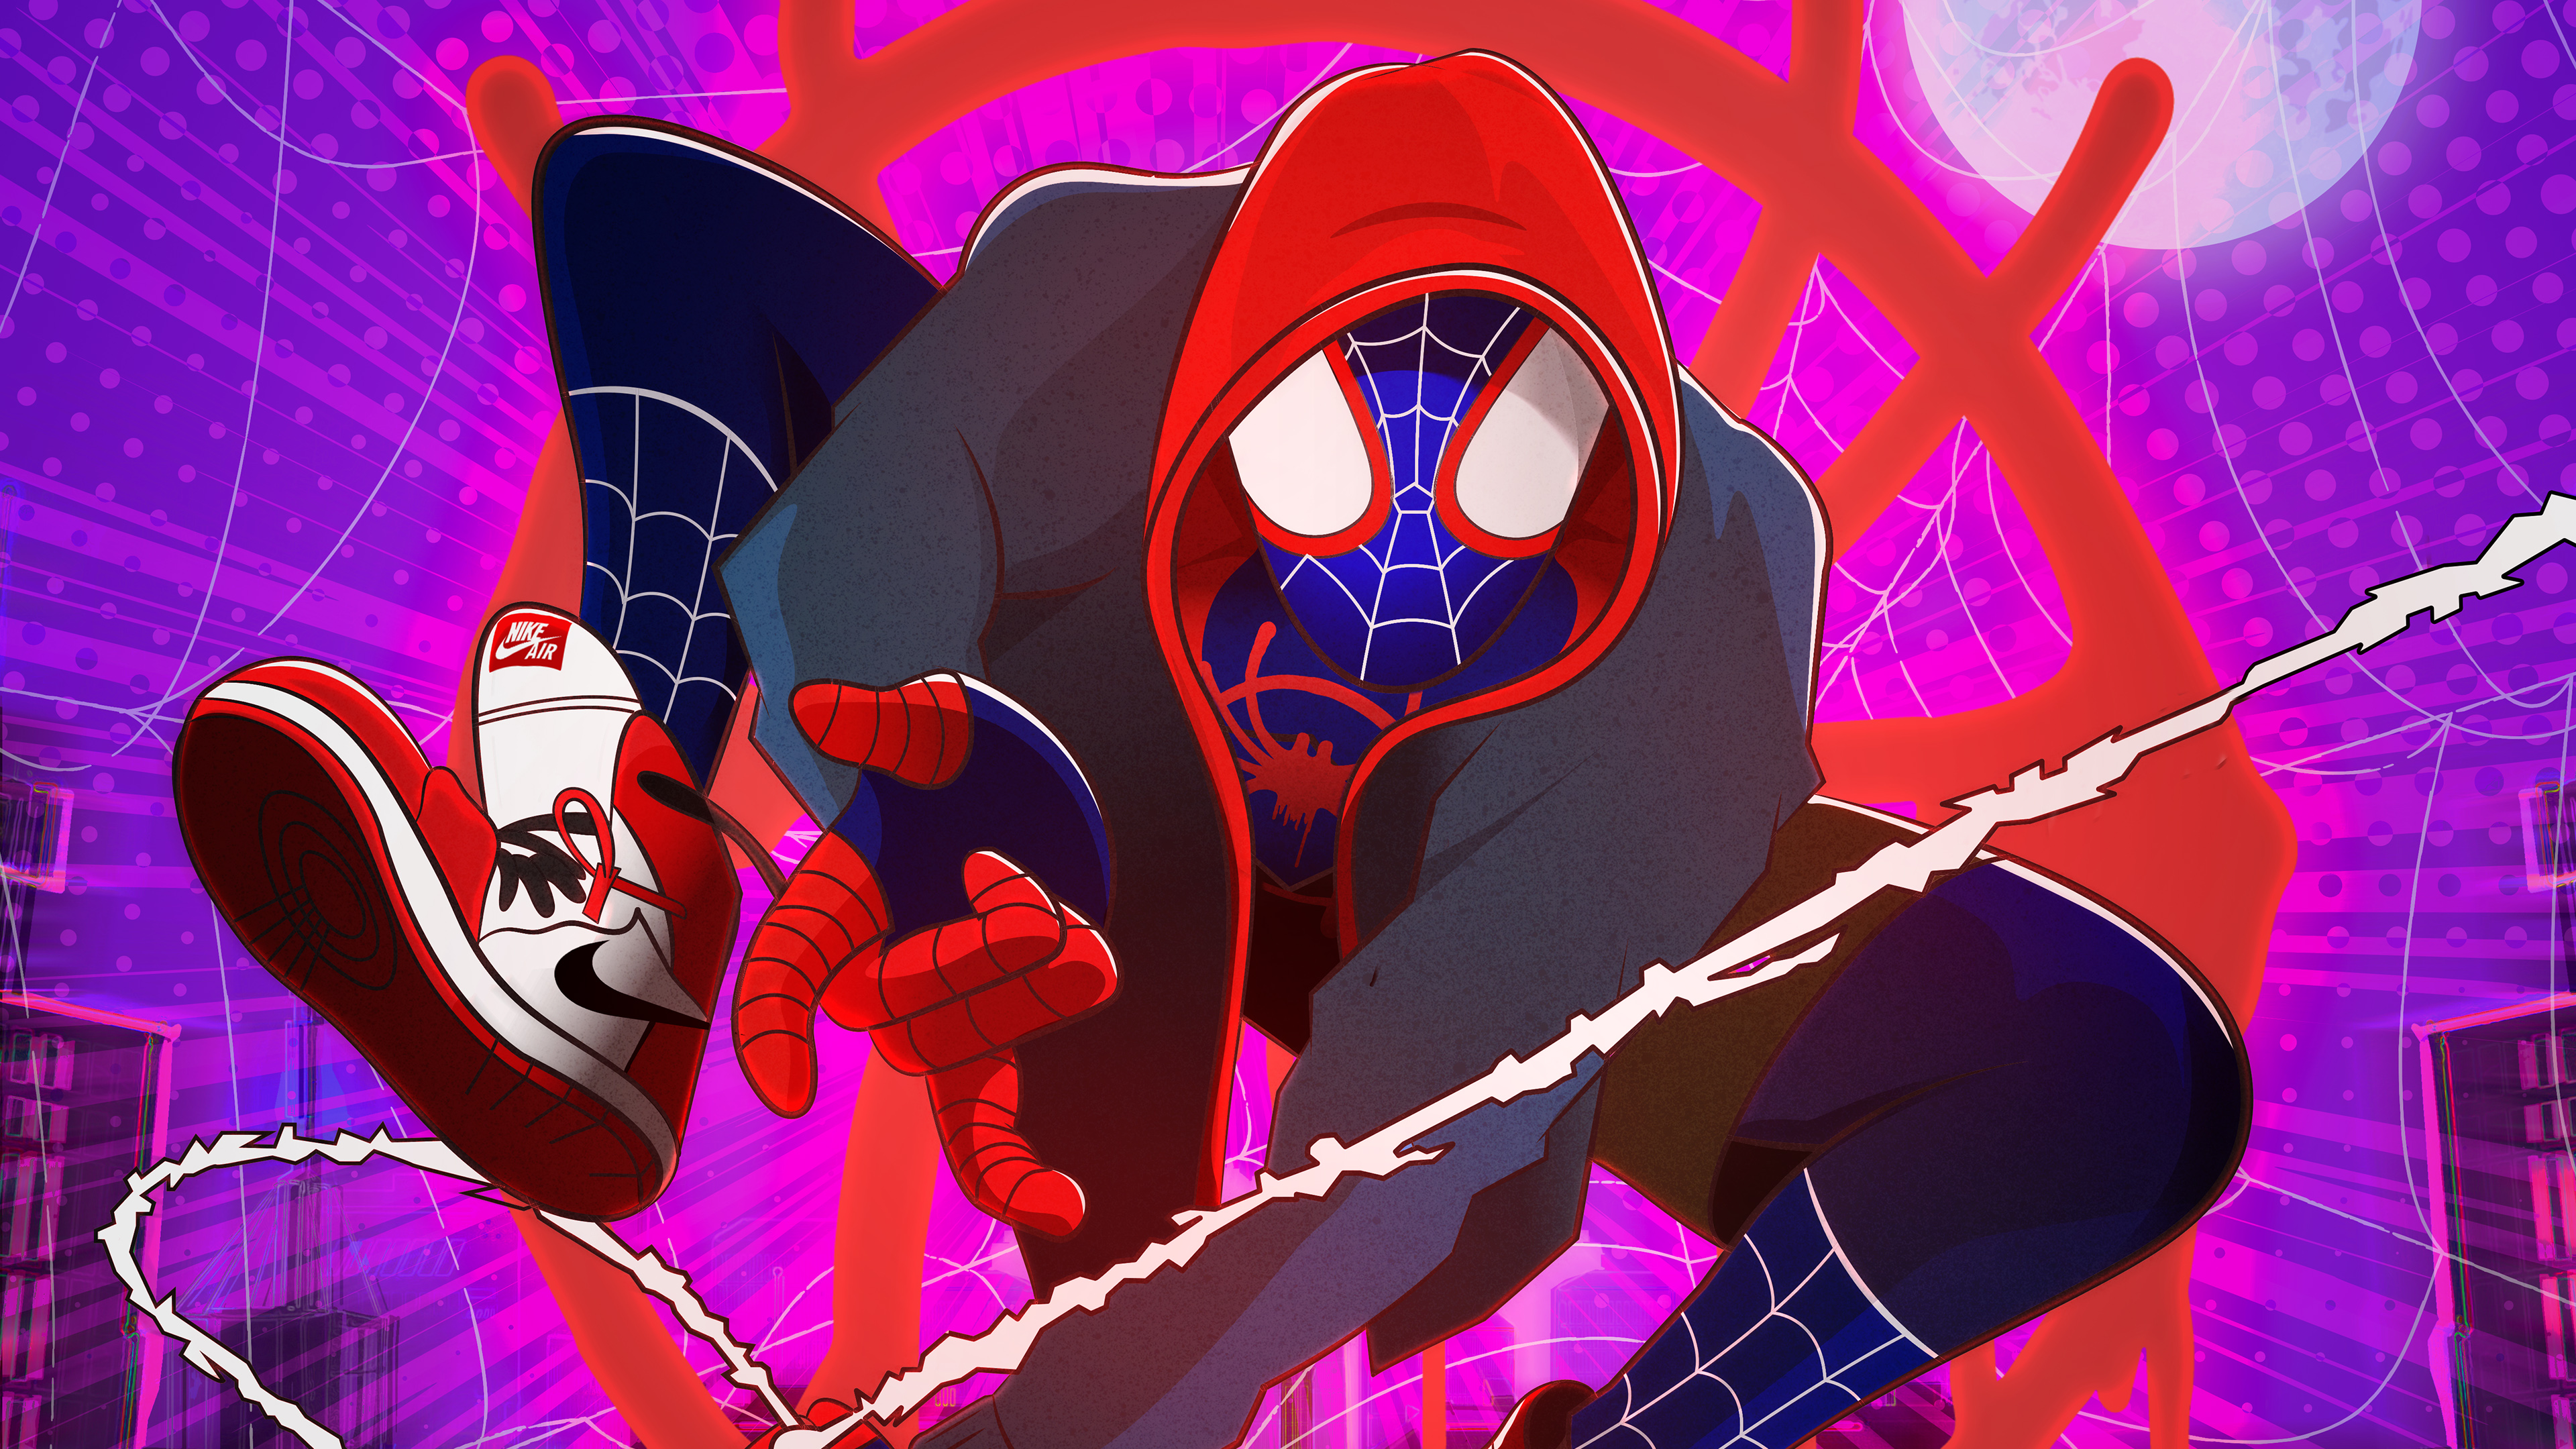 Miles Morales in Spider-Man Into the Spider-Verse Wallpapers | HD Wallpapers